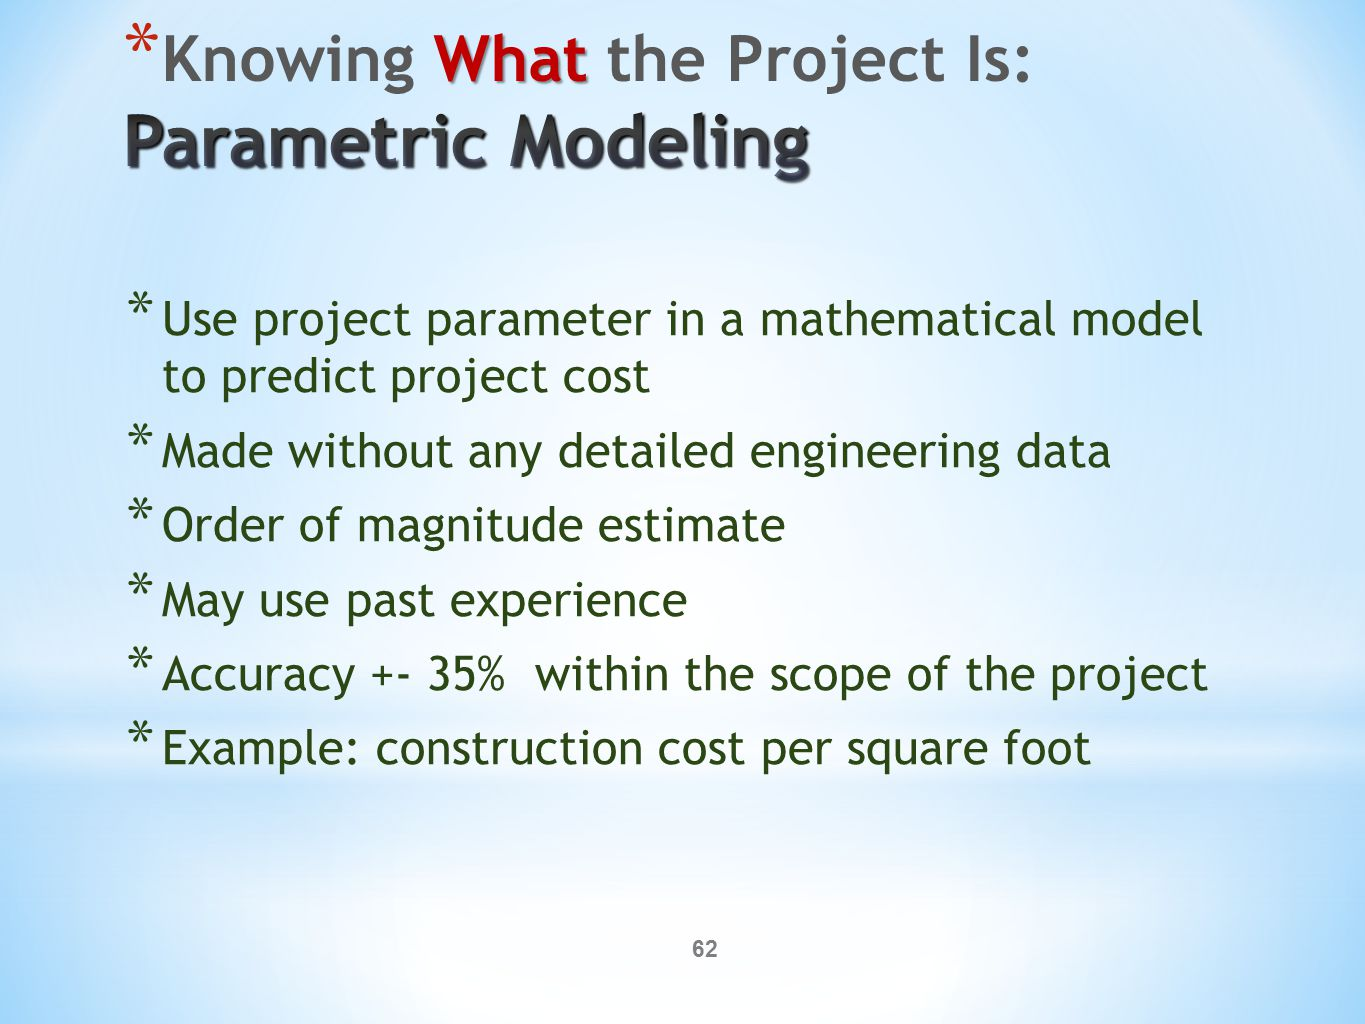 62 * Use project parameter in a mathematical model to predict project cost * Made without any detailed engineering data * Order of magnitude estimate